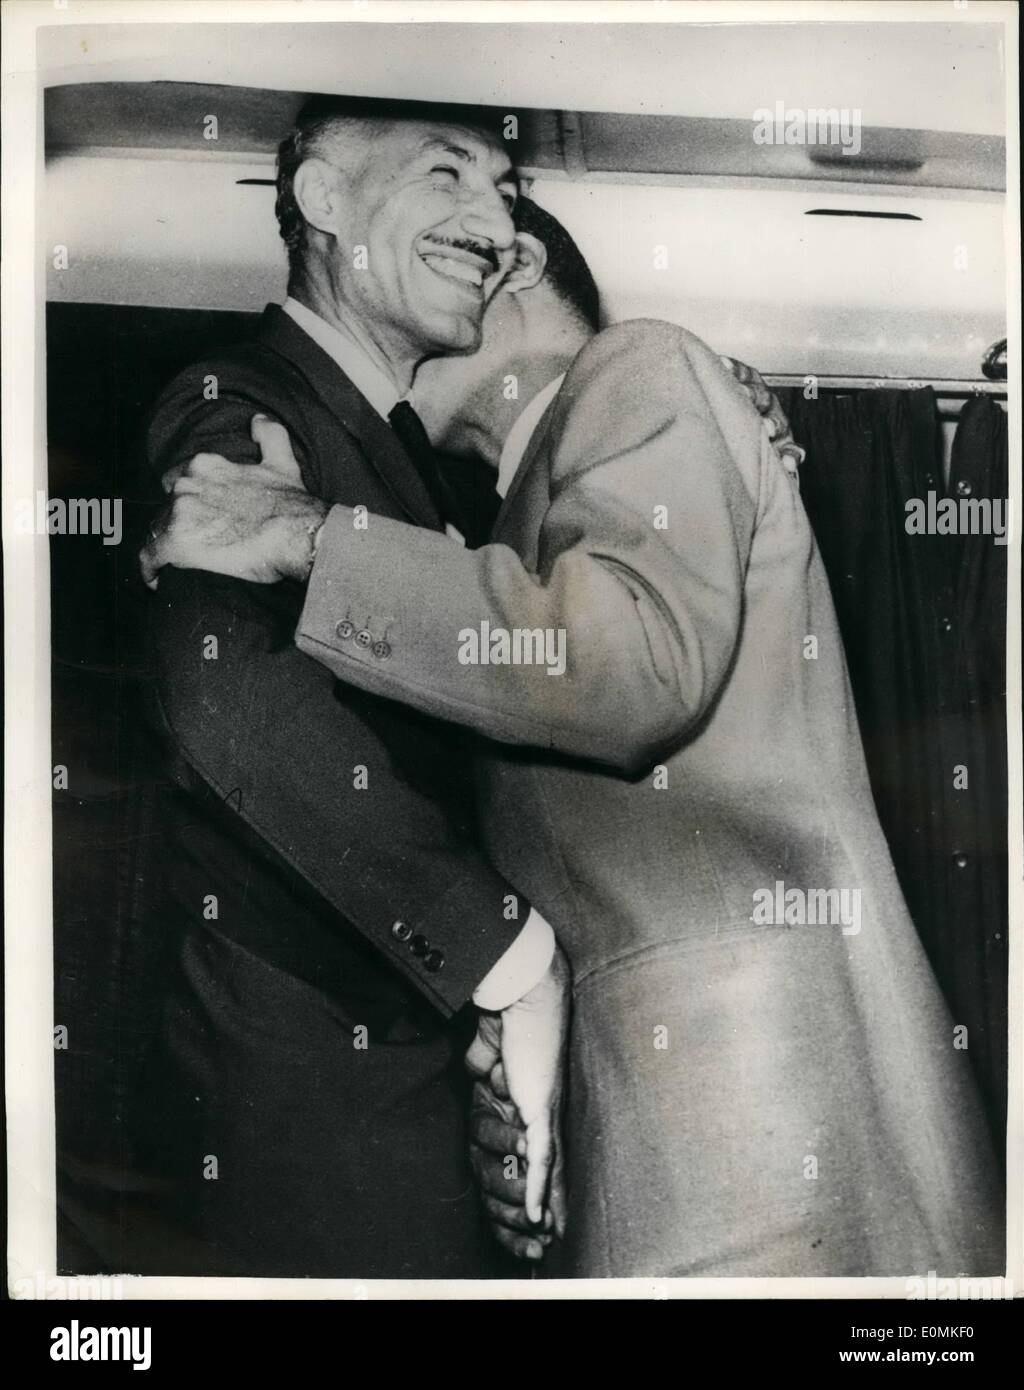 Oct. 10, 1955 - Gamal Salem - Egypt's Deputy Premier Greeted by Colonel Nasser on Return from Asia.: Egypt's - Stock Image